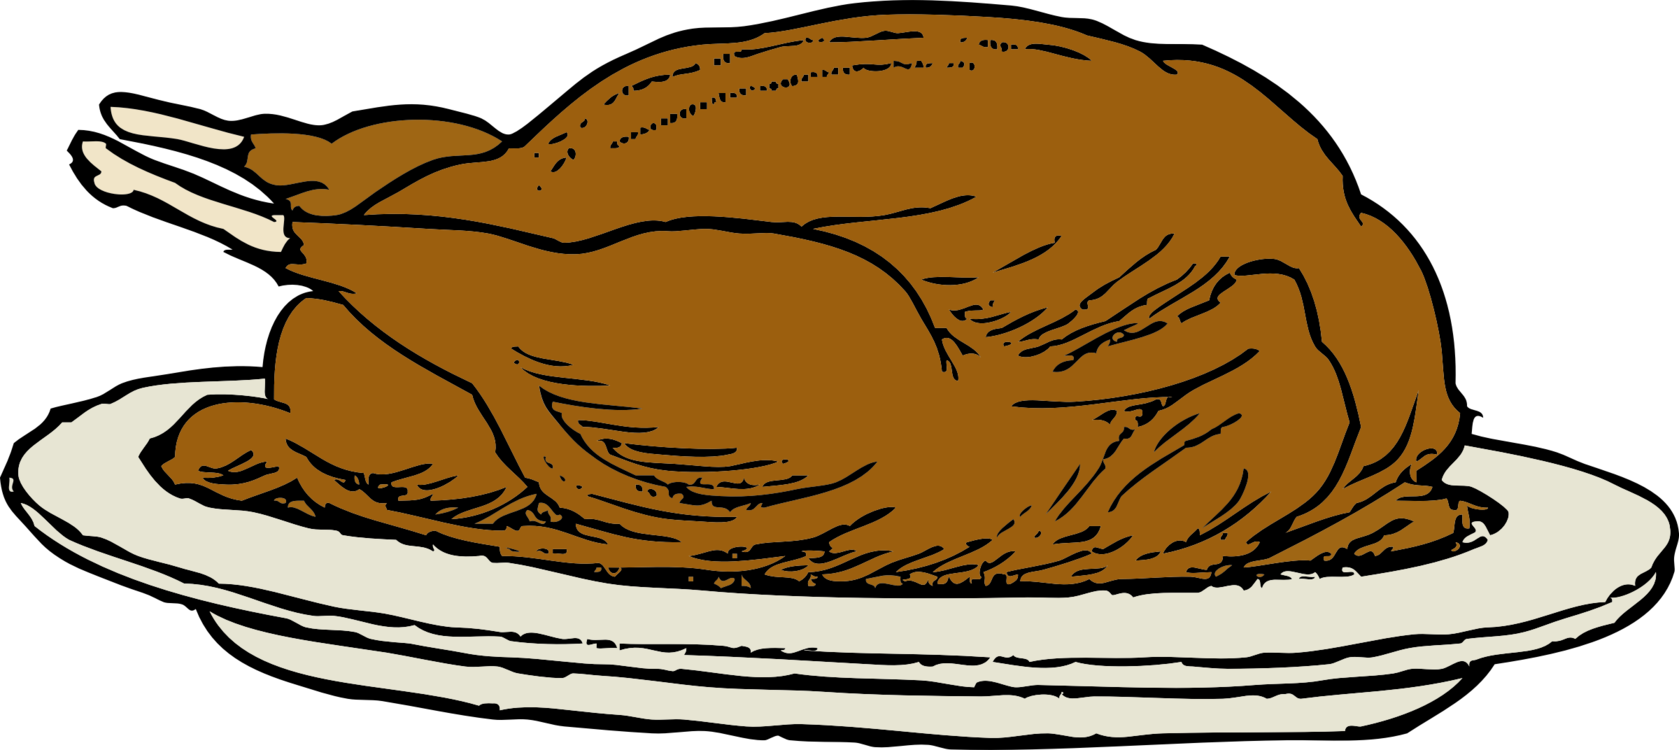 Wing clipart turkey wing. Fried chicken buffalo barbecue